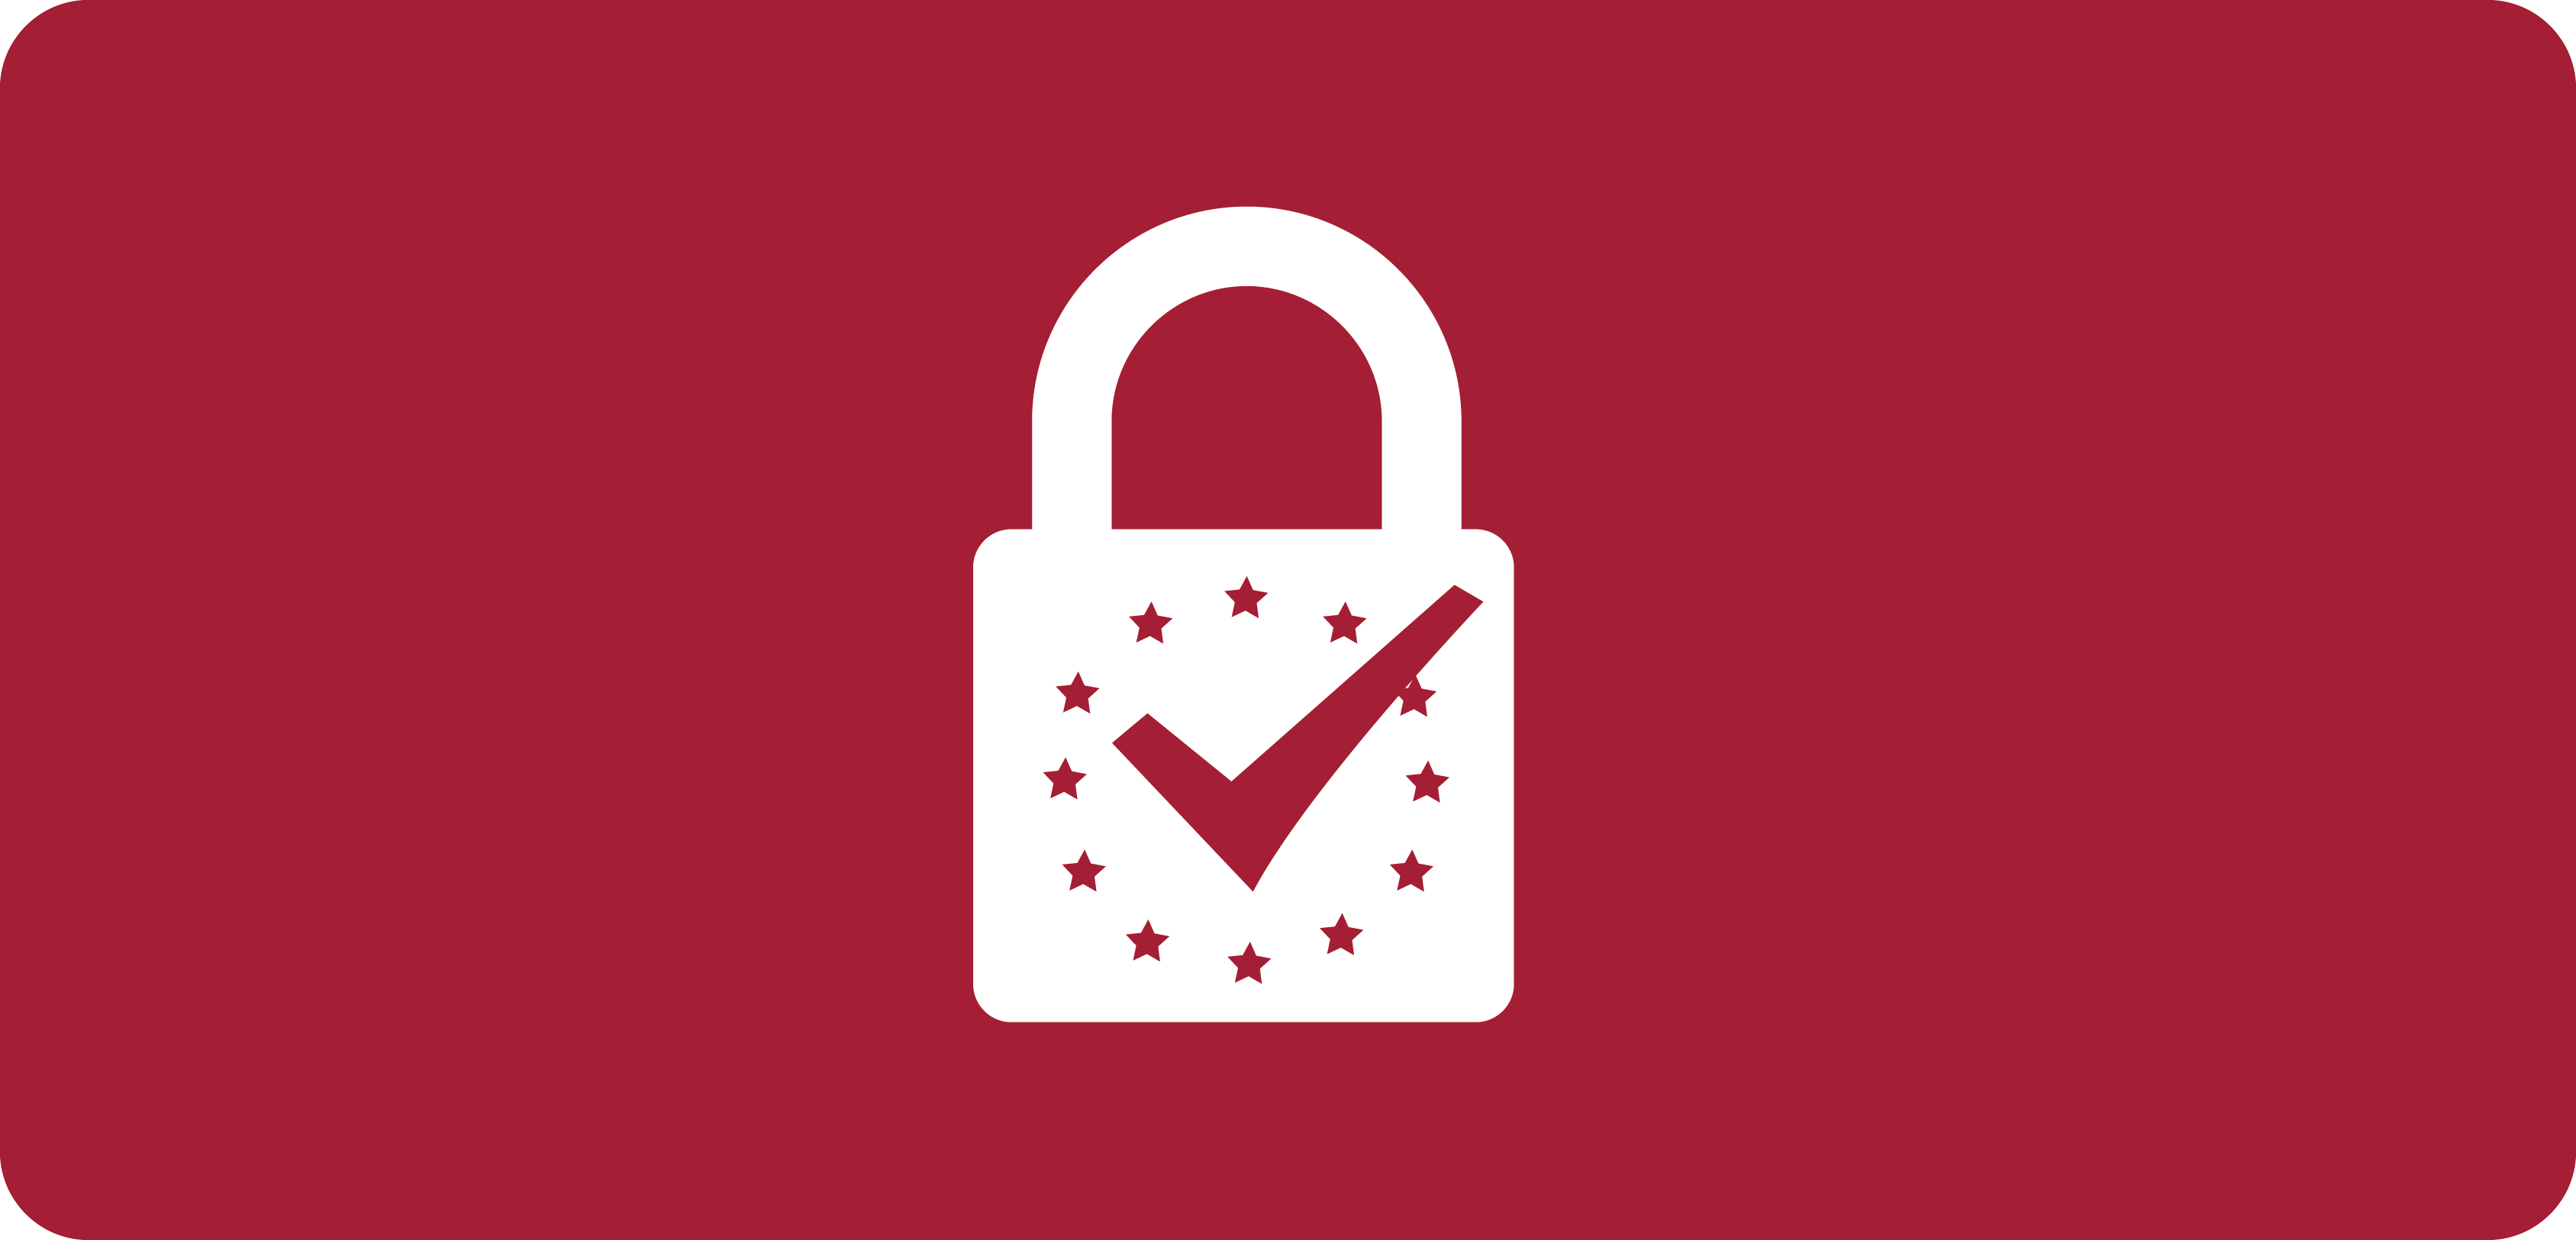 White padlock icon on red background